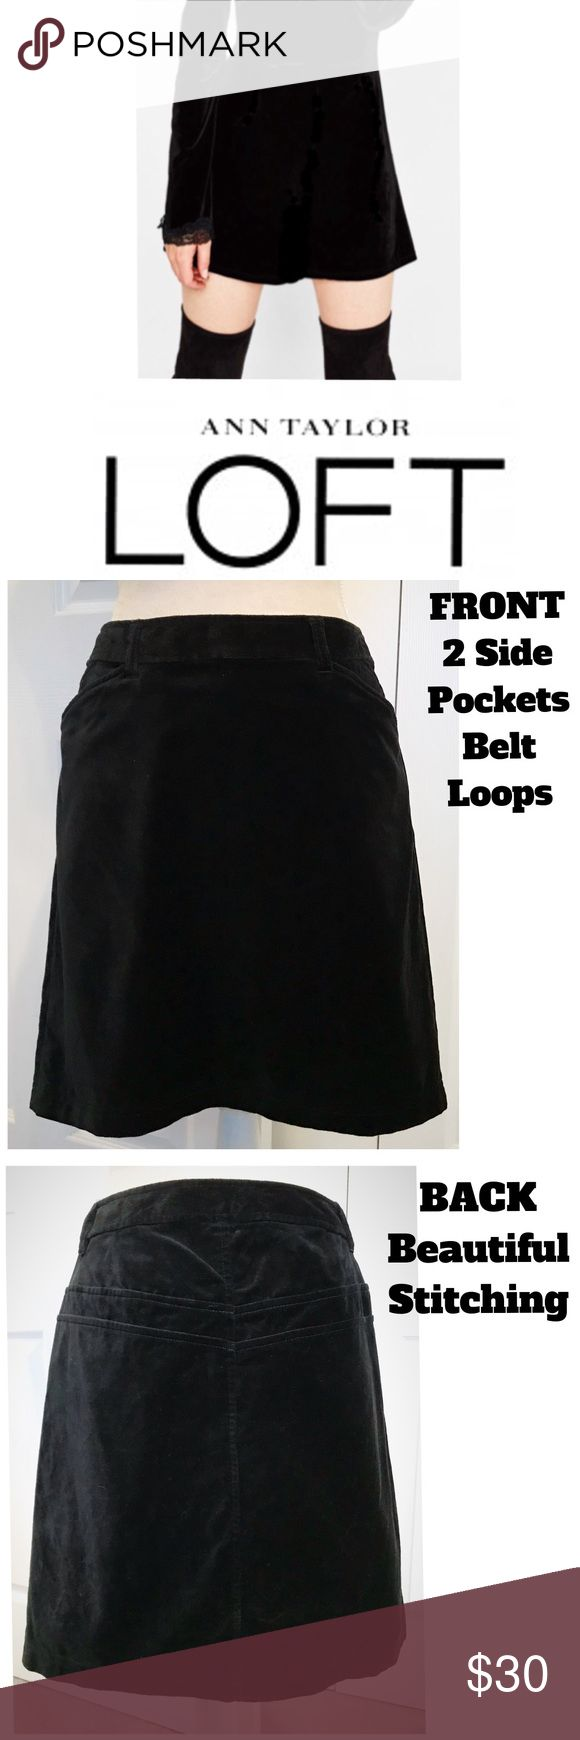 """Ann Taylor Loft, Black Velvet Shift Skirt Ann Taylor Loft, Black crushed velvet shift skirt. Gorgeous stitched detailing, edged side pockets, belt-loops on Waistband, side zip & clasp hook closure. ✅Waist 32"""", Length 19"""" Long (hits at my knees). In Excellent, Like New Condition! Adorable with boots! Easy dressed up with jacket or casual with tee shirts. It's Fabulous! Ann Taylor Loft Skirts A-Line or Full"""